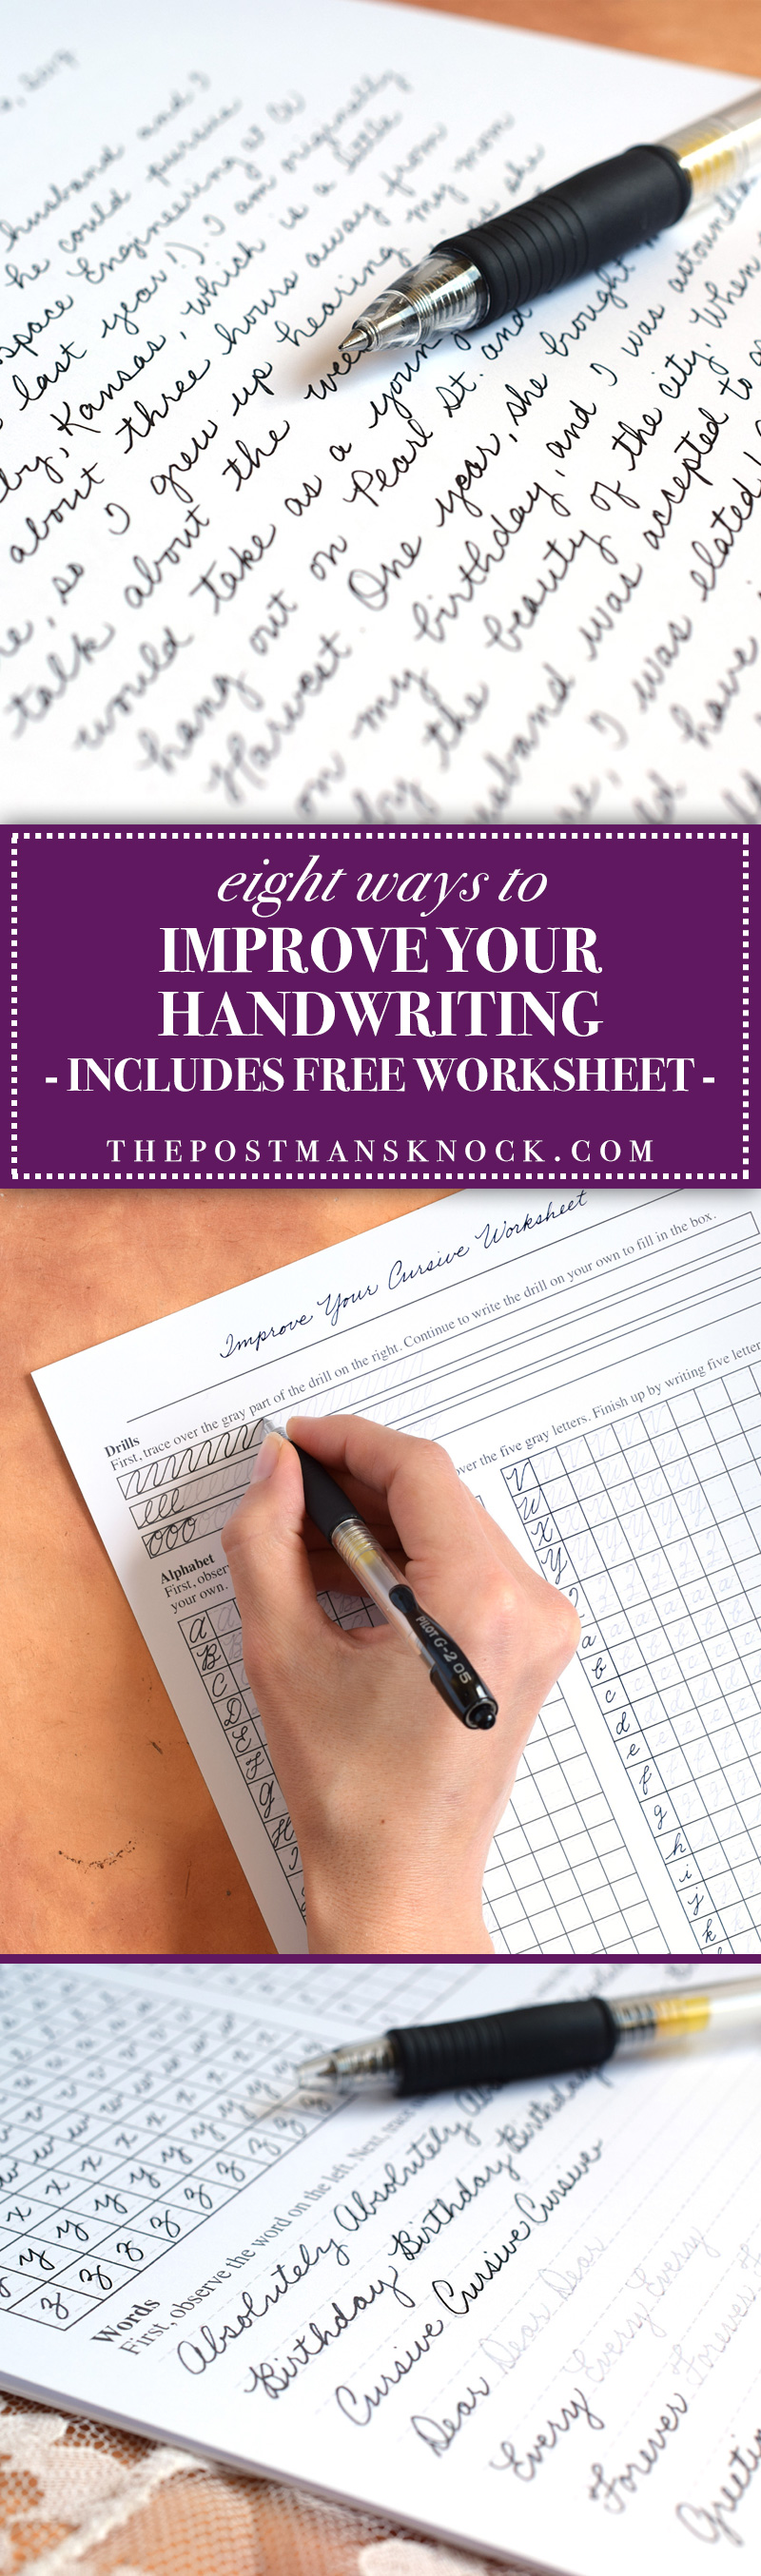 Algebra 1 Worksheets For 9th Grade Tips To Improve Your Handwriting Plus A Free Worksheet  The  Adding And Subtracting Negative And Positive Numbers Worksheets with Simple Multiplication Worksheets  Tips To Improve Your Handwriting Plus A Free Worksheet  The Postmans  Knock Household Cash Flow Worksheet Pdf